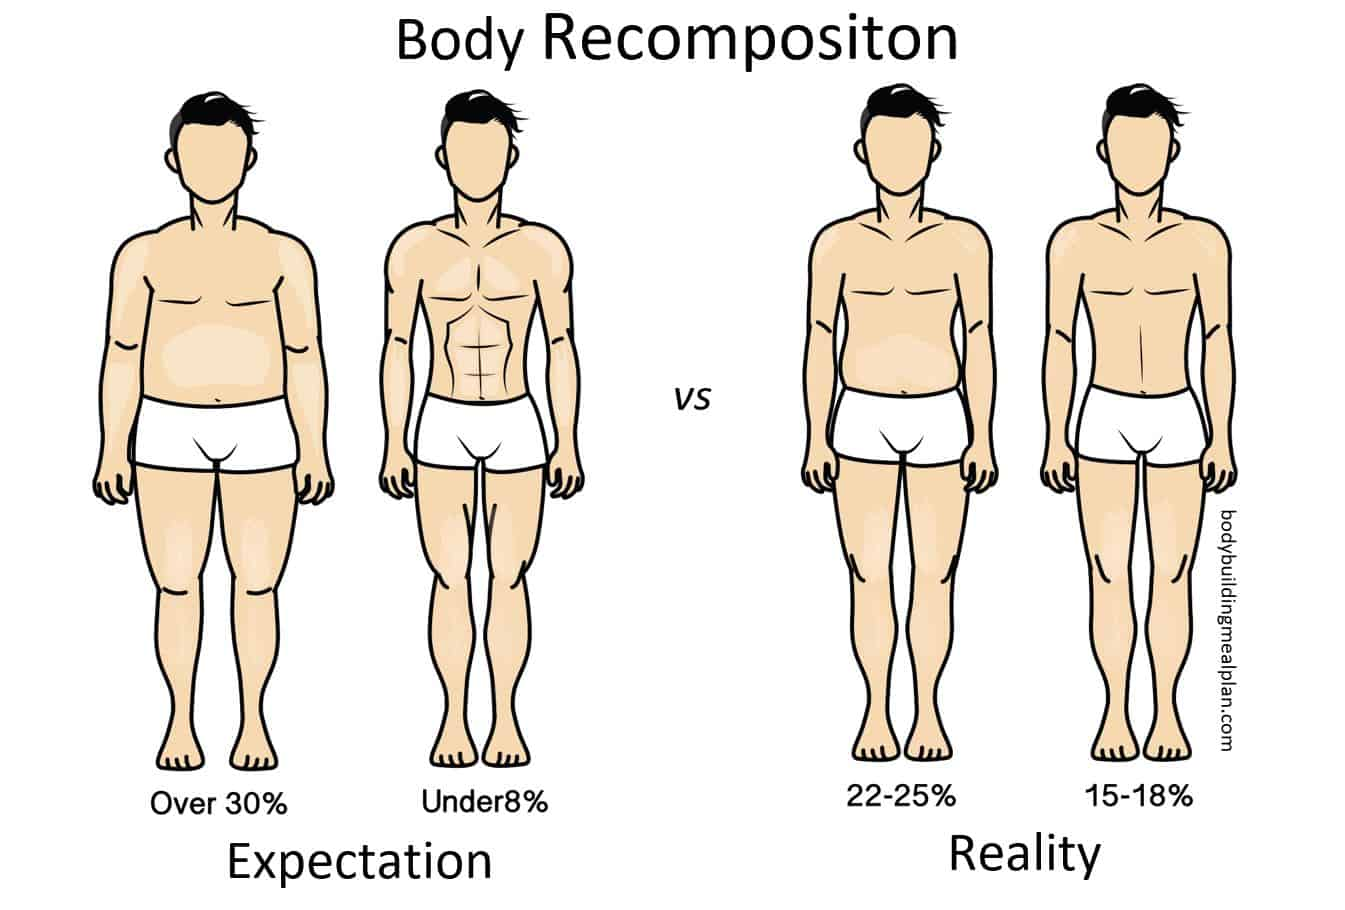 body composition expectation vs reality